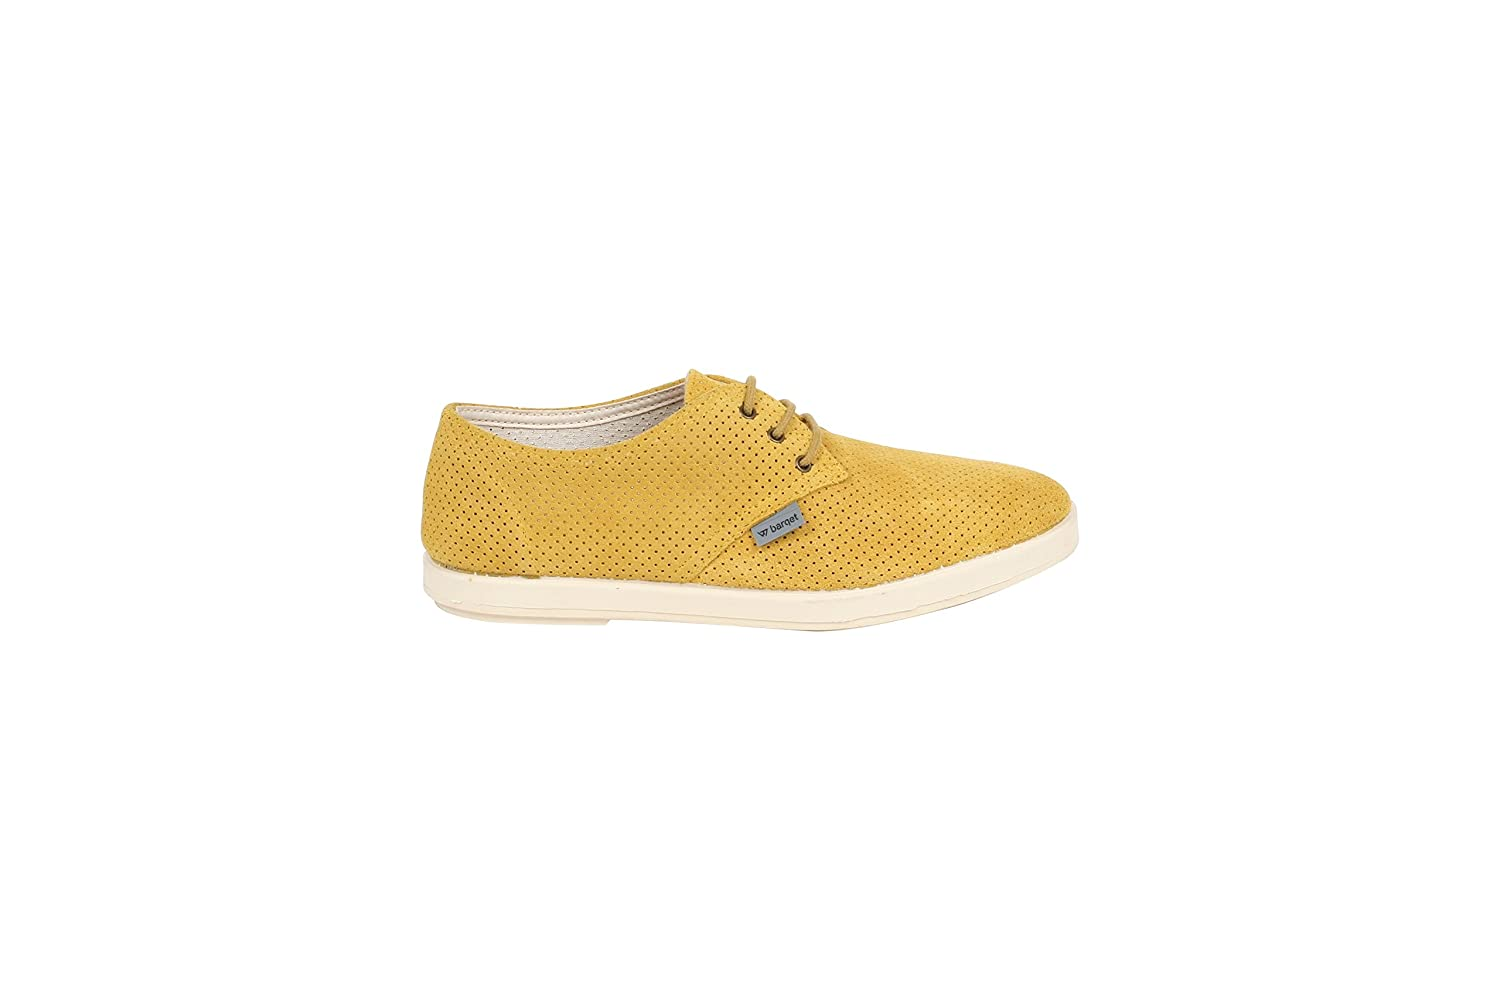 BARQET Unisex-Erwachsene Dogma Low Perforated Suede Turnschuhe